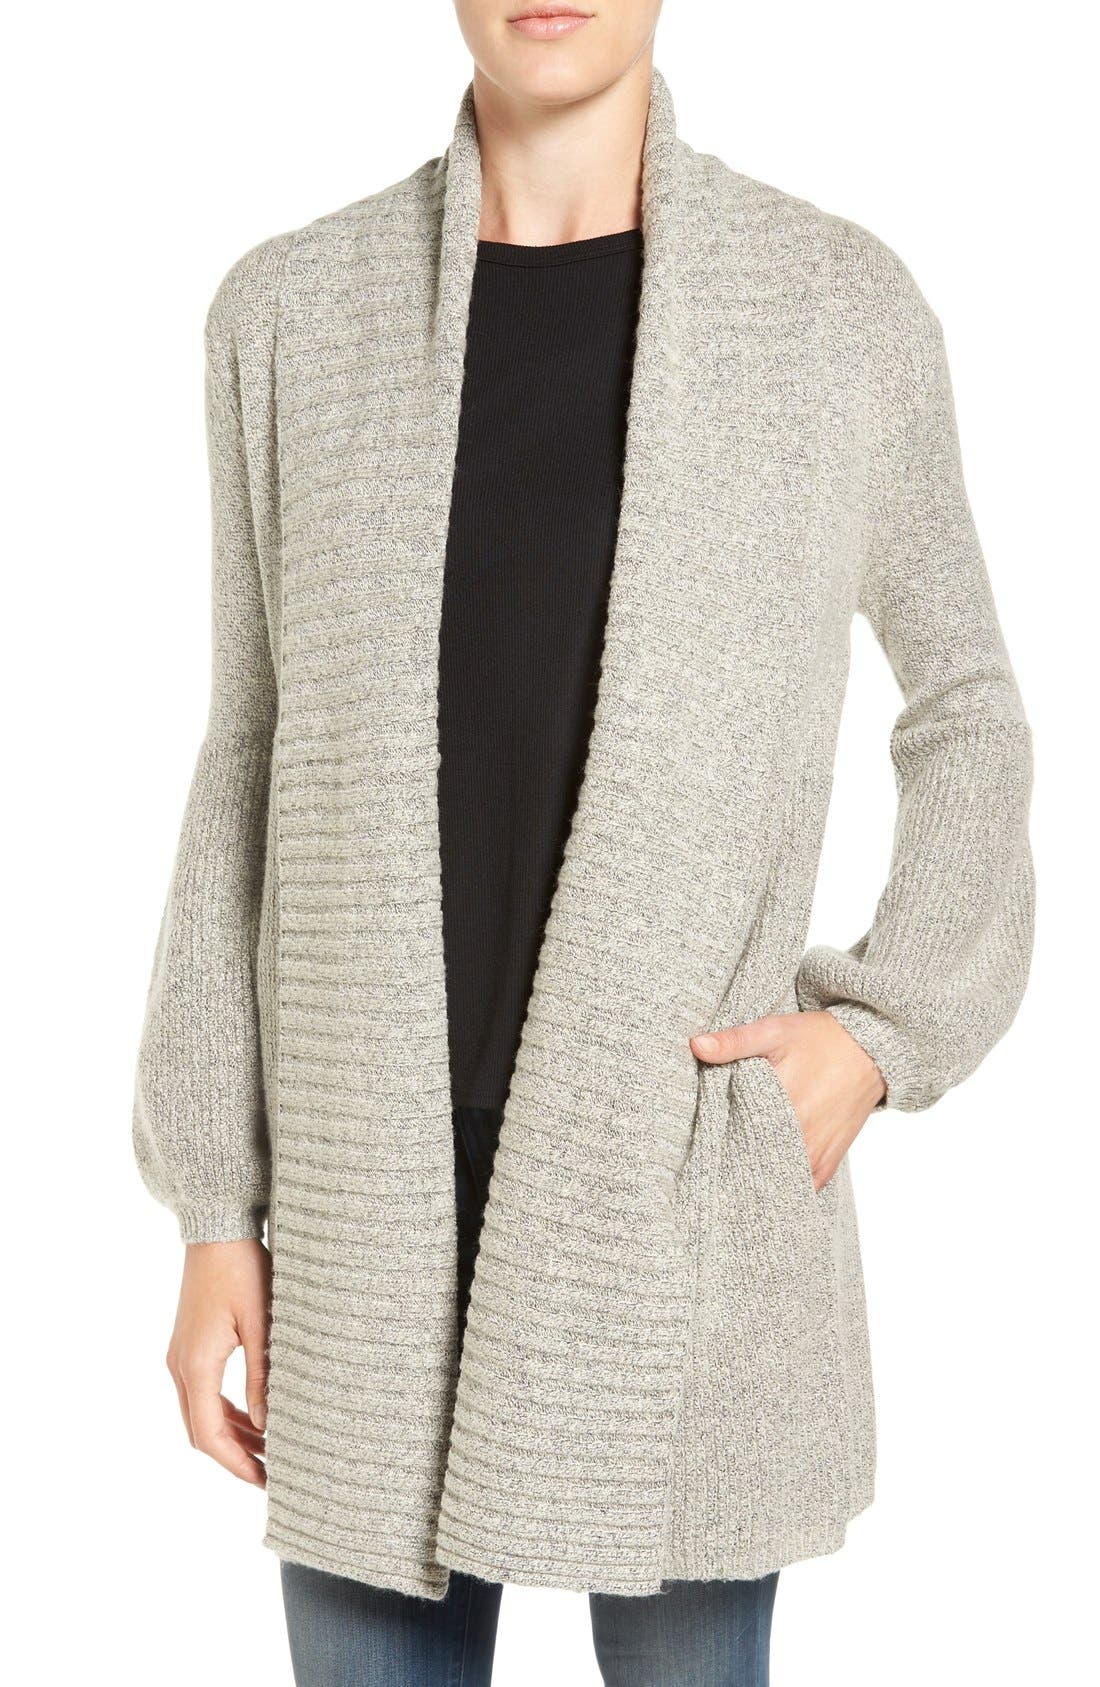 Alternate Image 1 Selected - Hinge Ribbed Cardigan